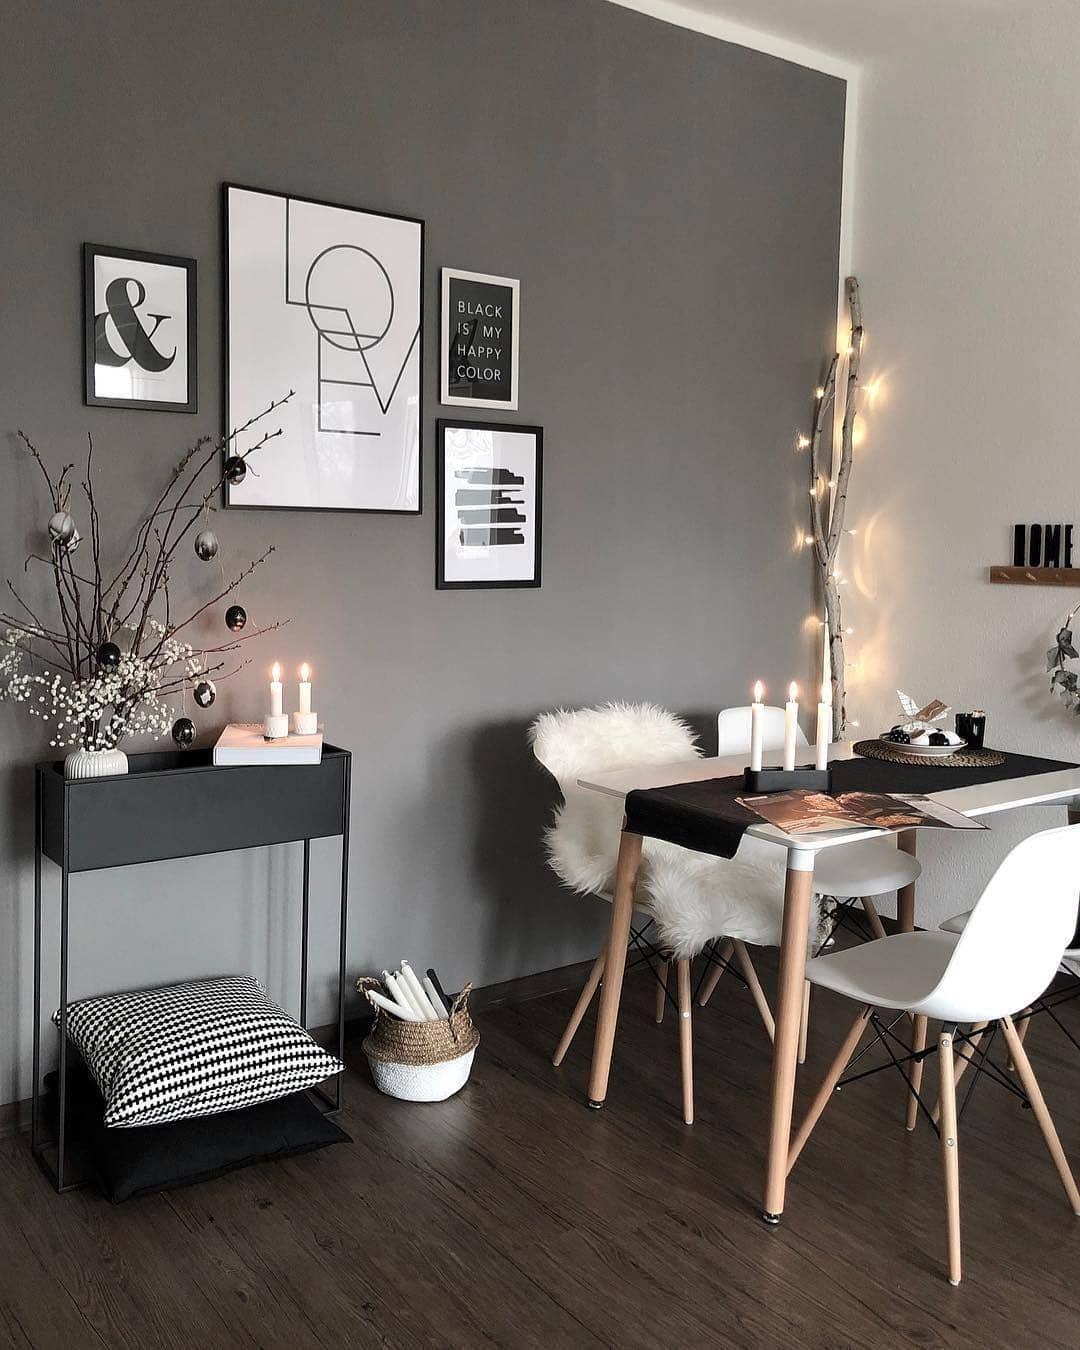 Interior Lifestyle On Instagram Interiordesign By V Hyggespreder Roomstyling Roomdecor Minimalist Dining Room Interior Inspo Interior